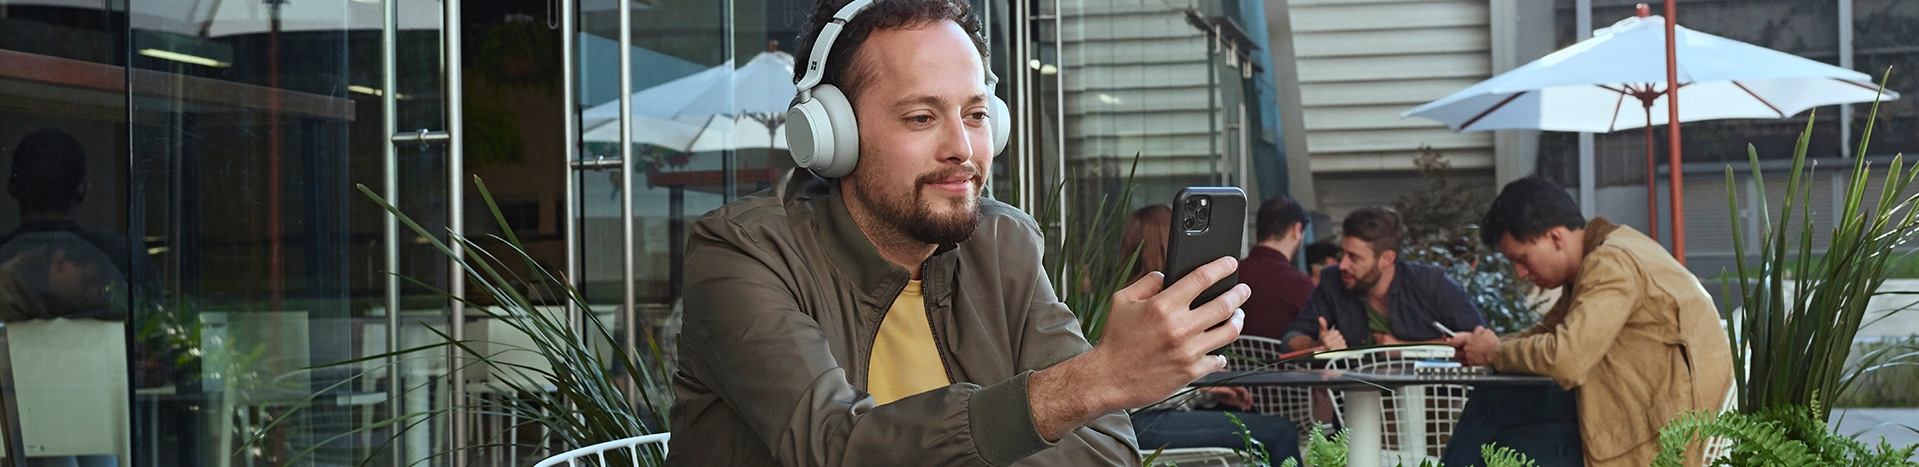 A person with headphones looking at a mobile device.